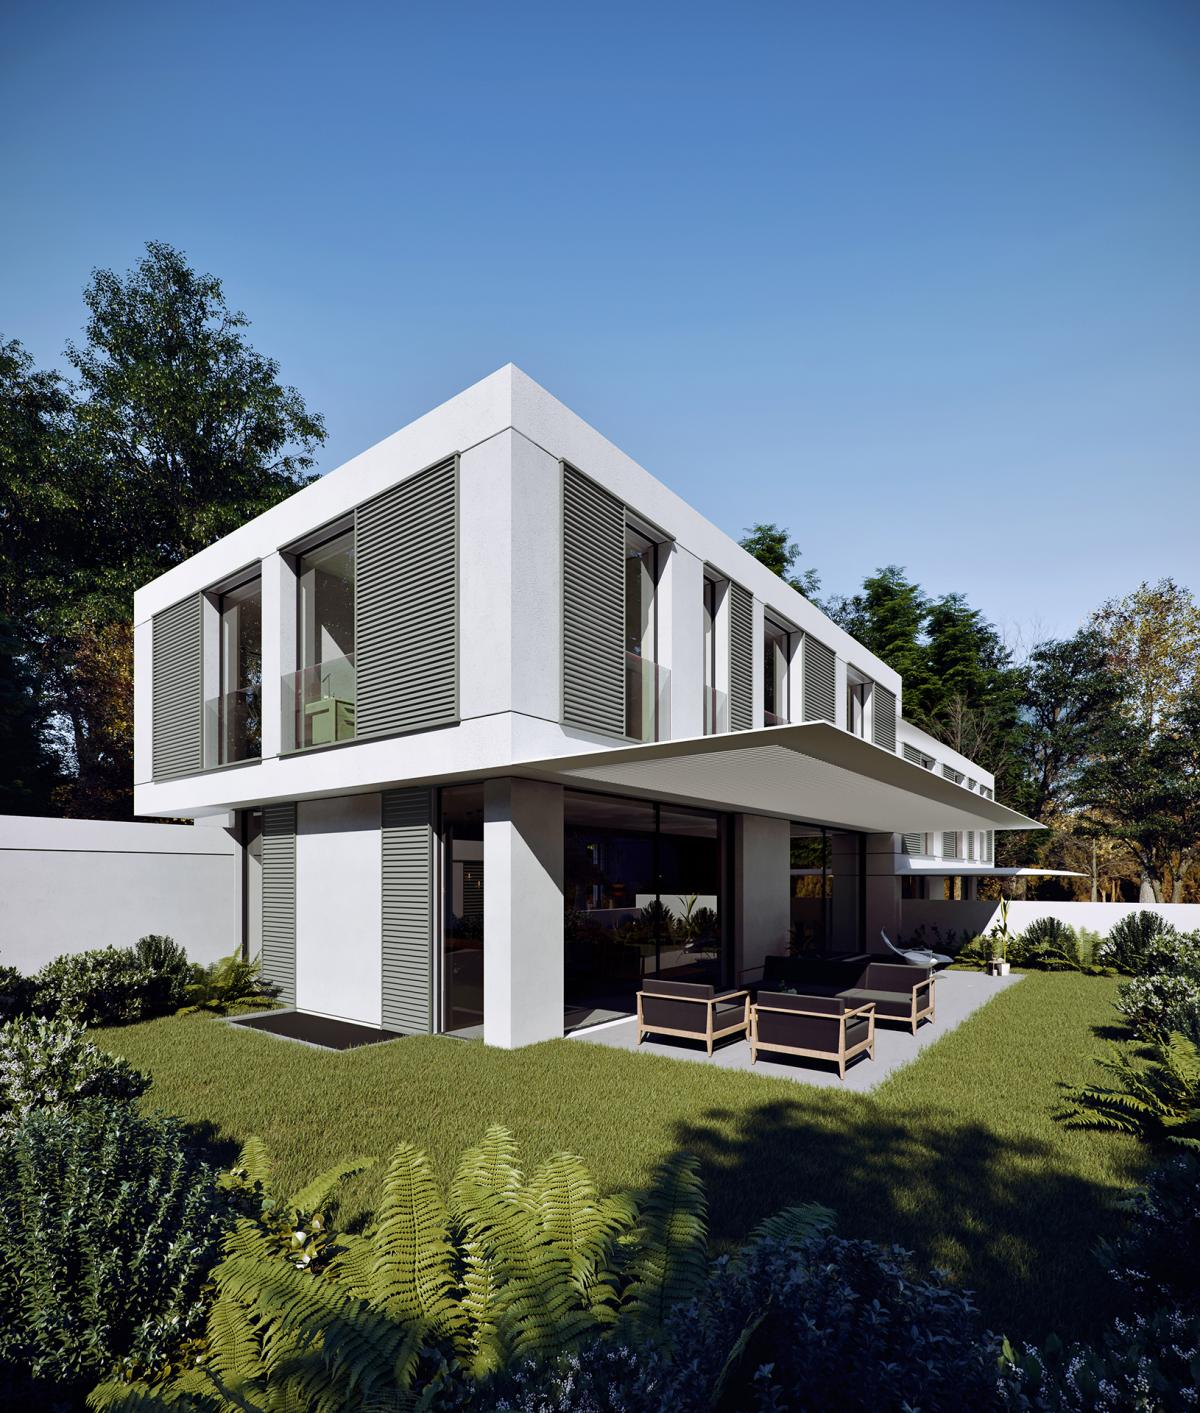 Hero shot 3d image of a double family villa